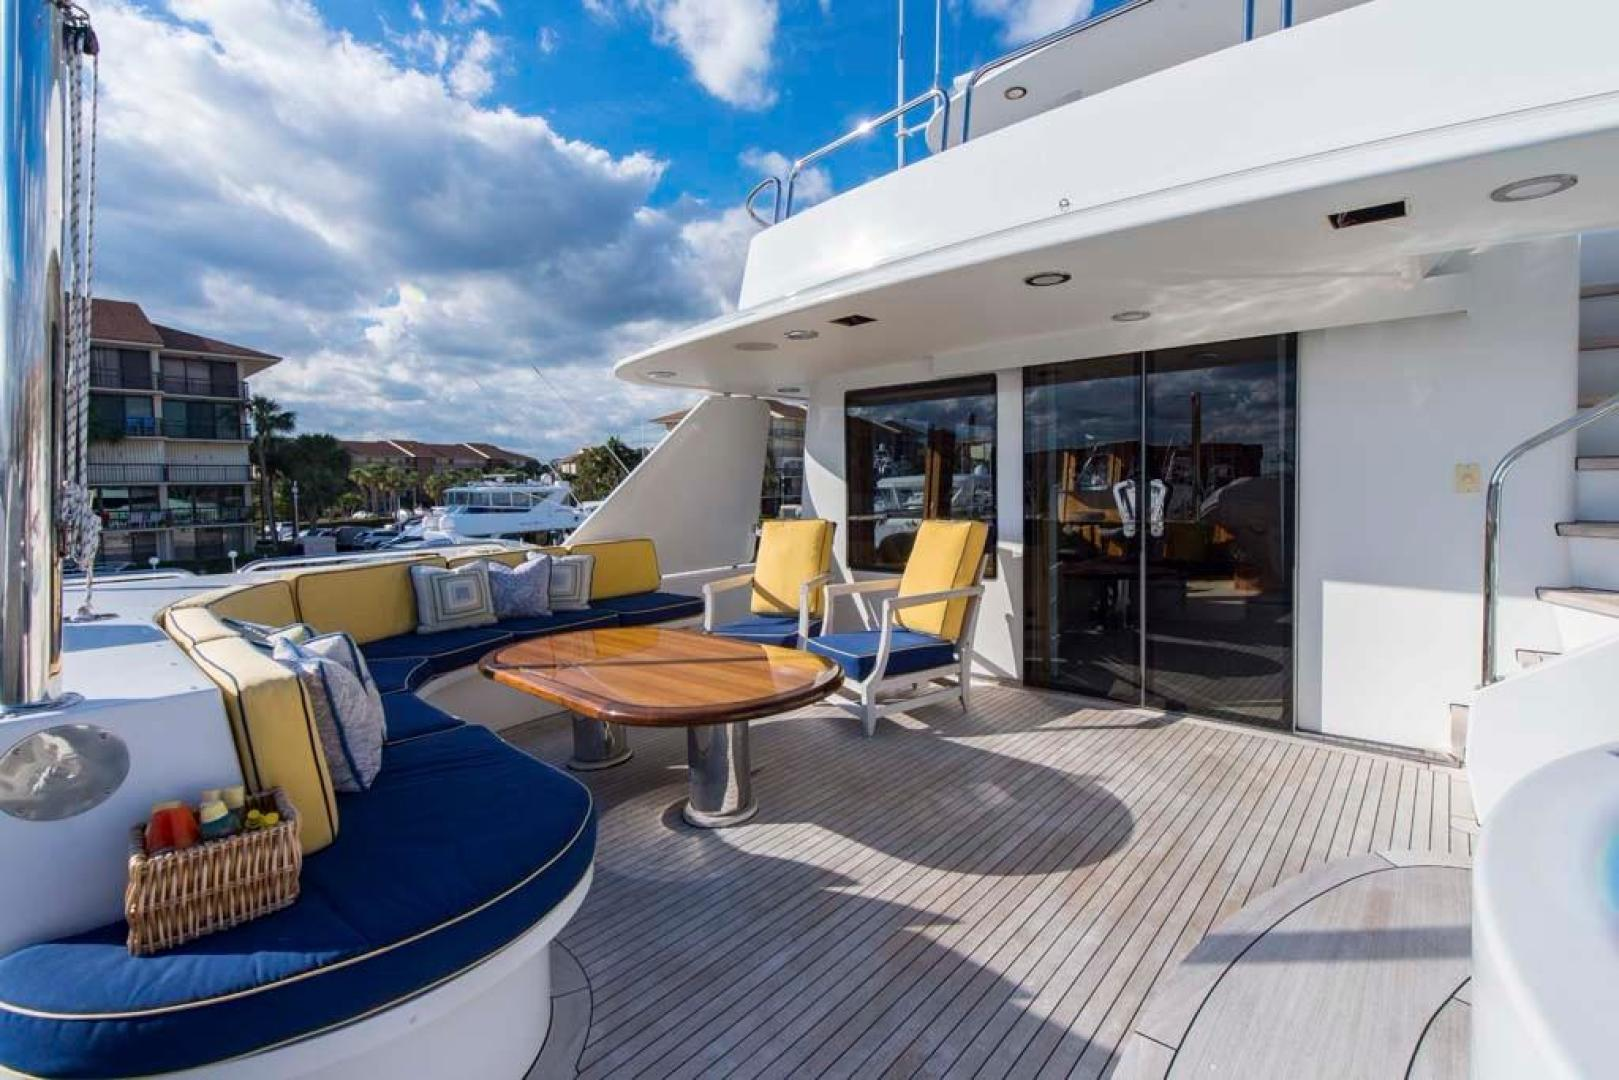 Westport-Tri-Deck-2003-Vision-Jupiter-Florida-United-States-Sky-Lounge-Aft-Deck-370717